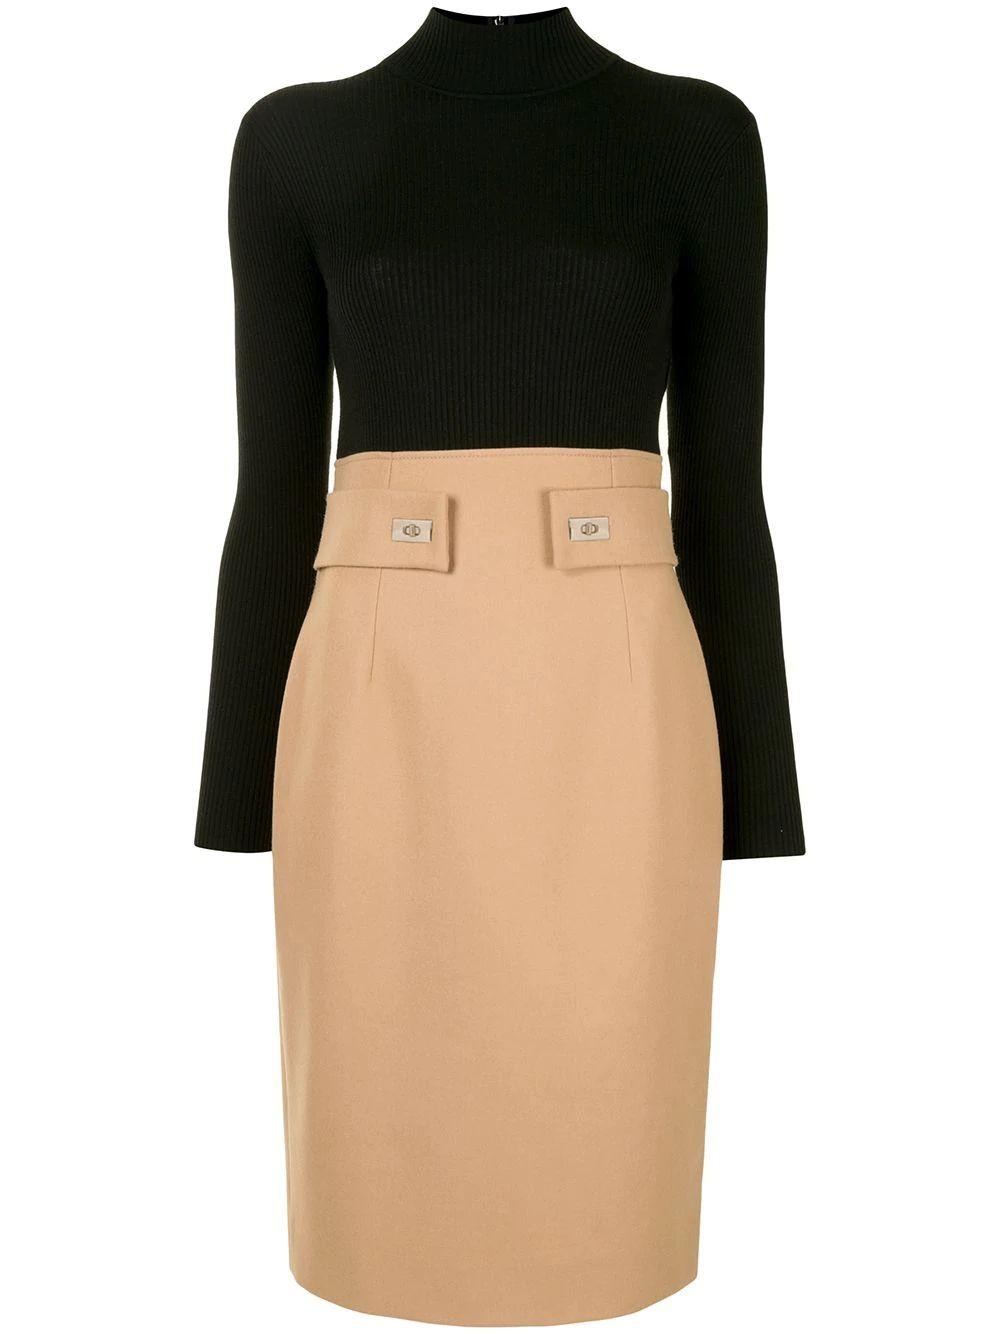 Two-Tone Turtleneck Dress